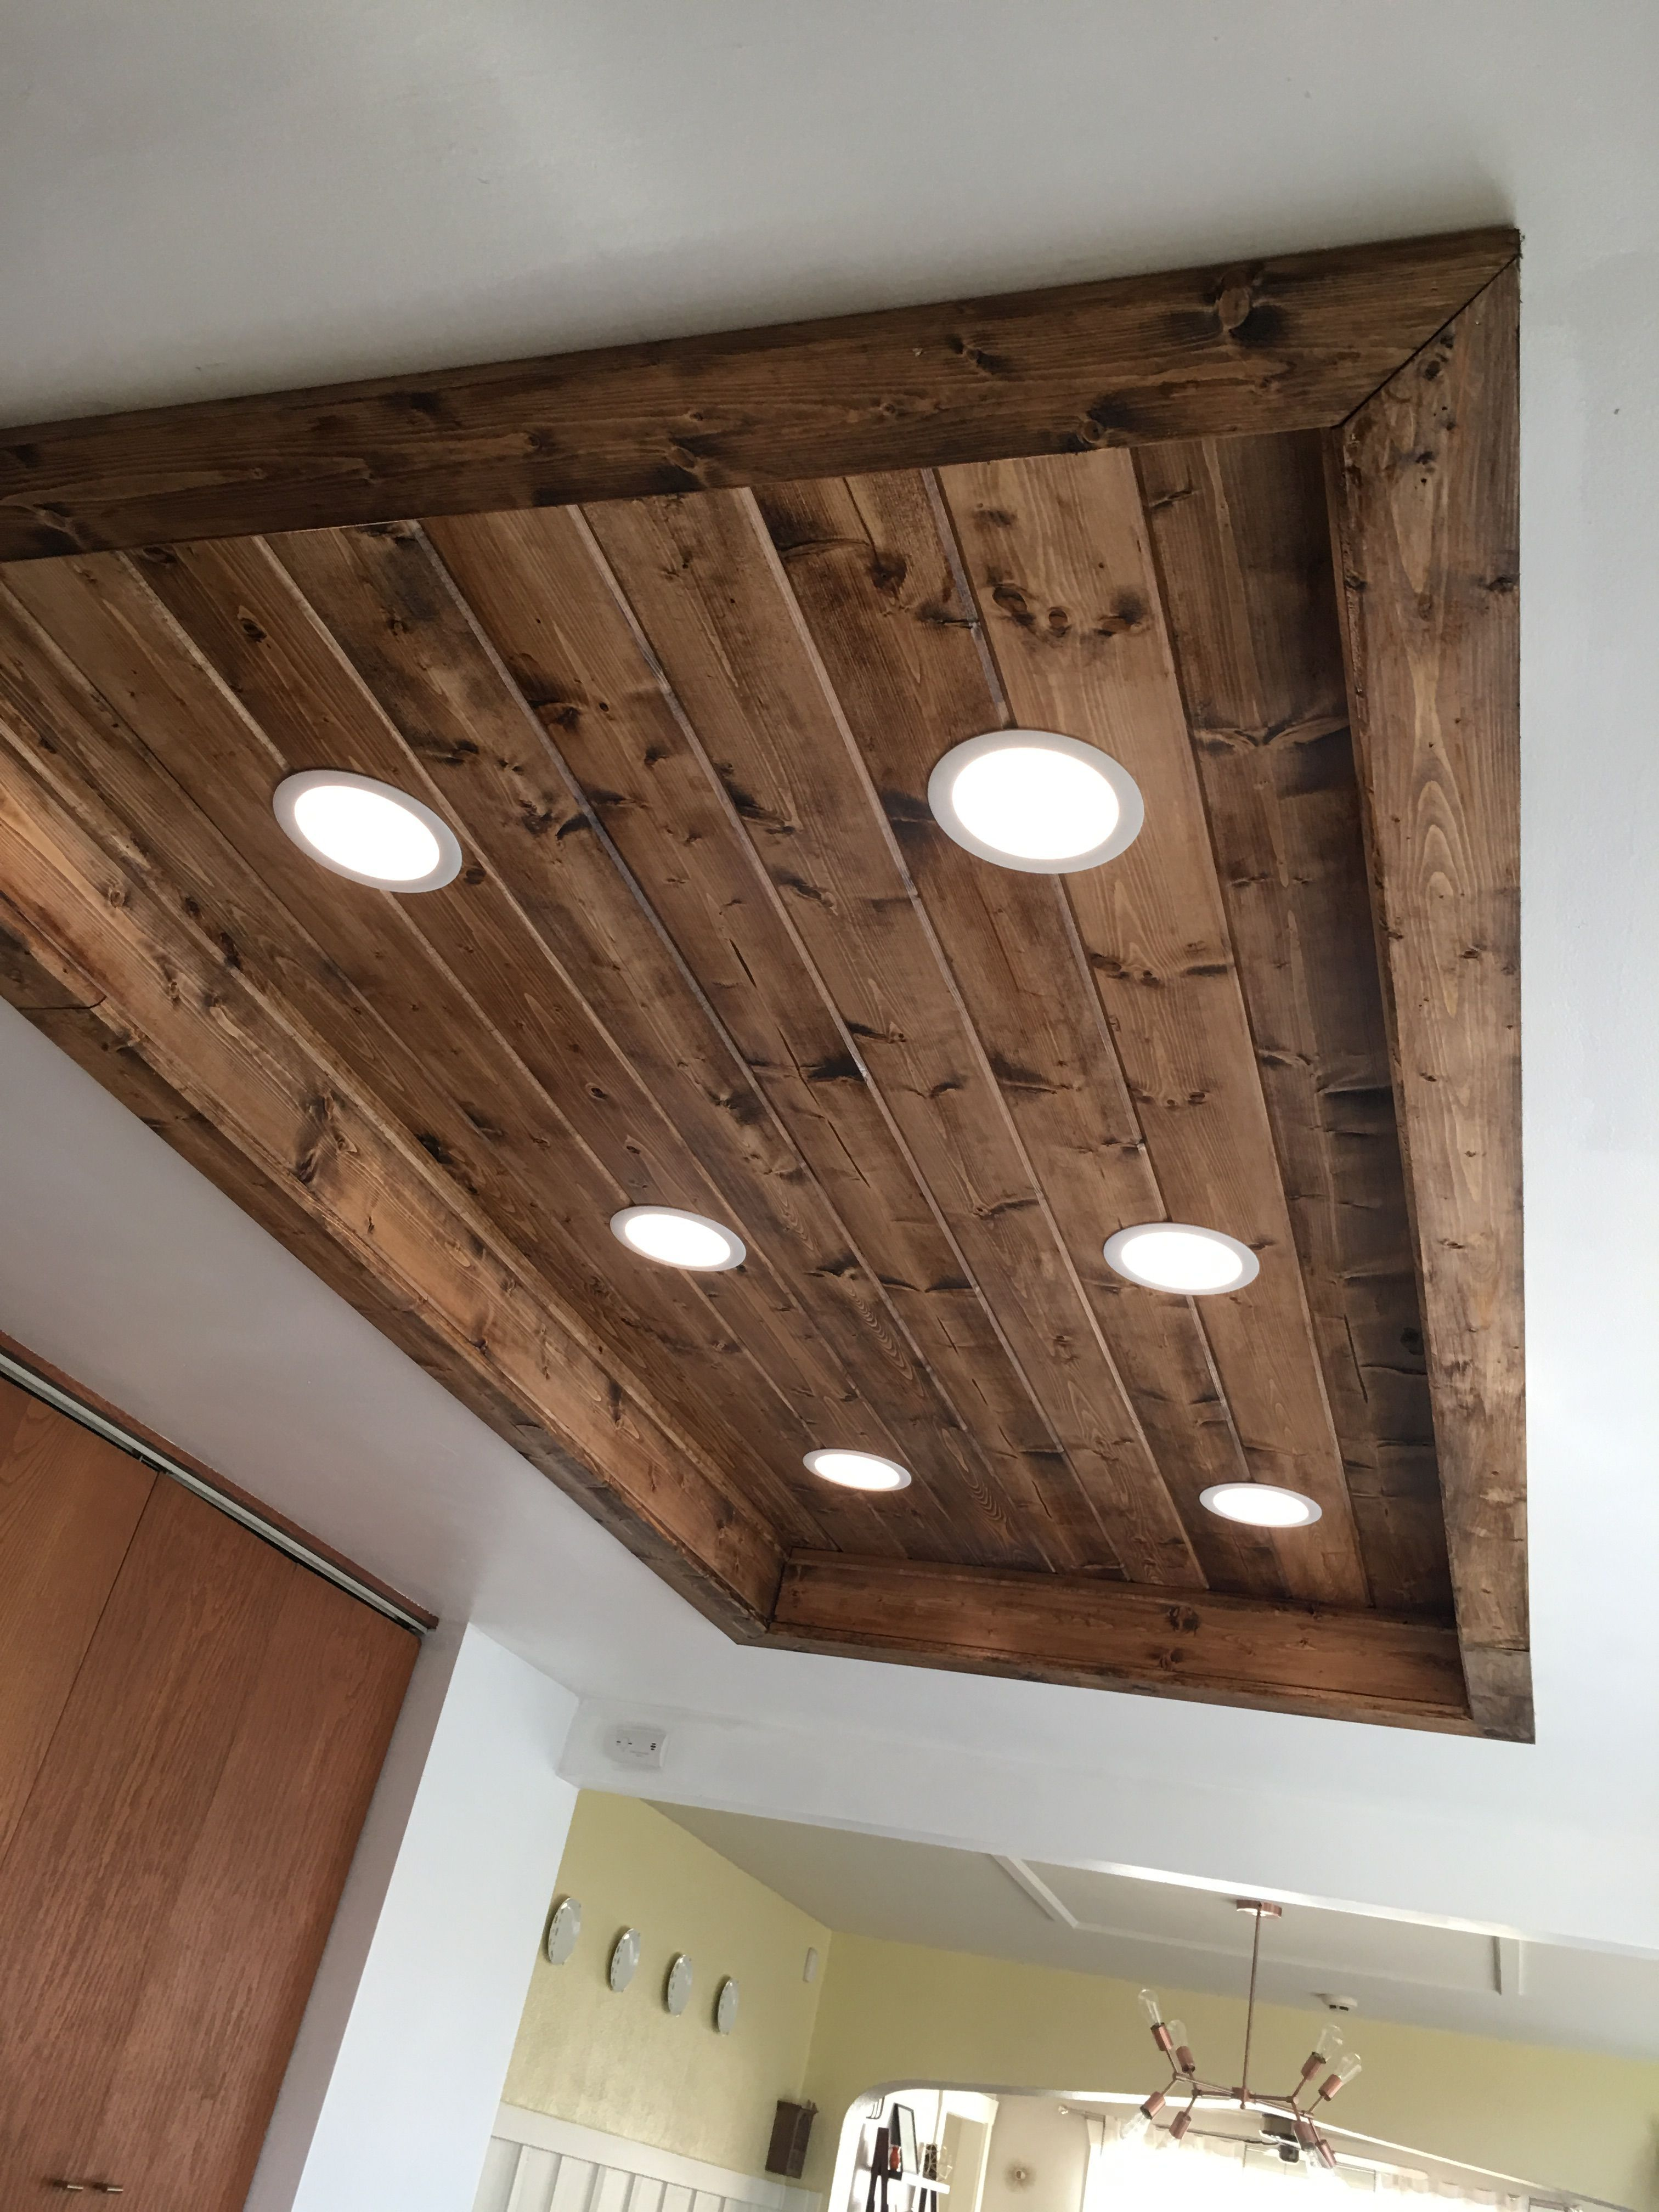 Lighting Ideas For A Low Ceiling